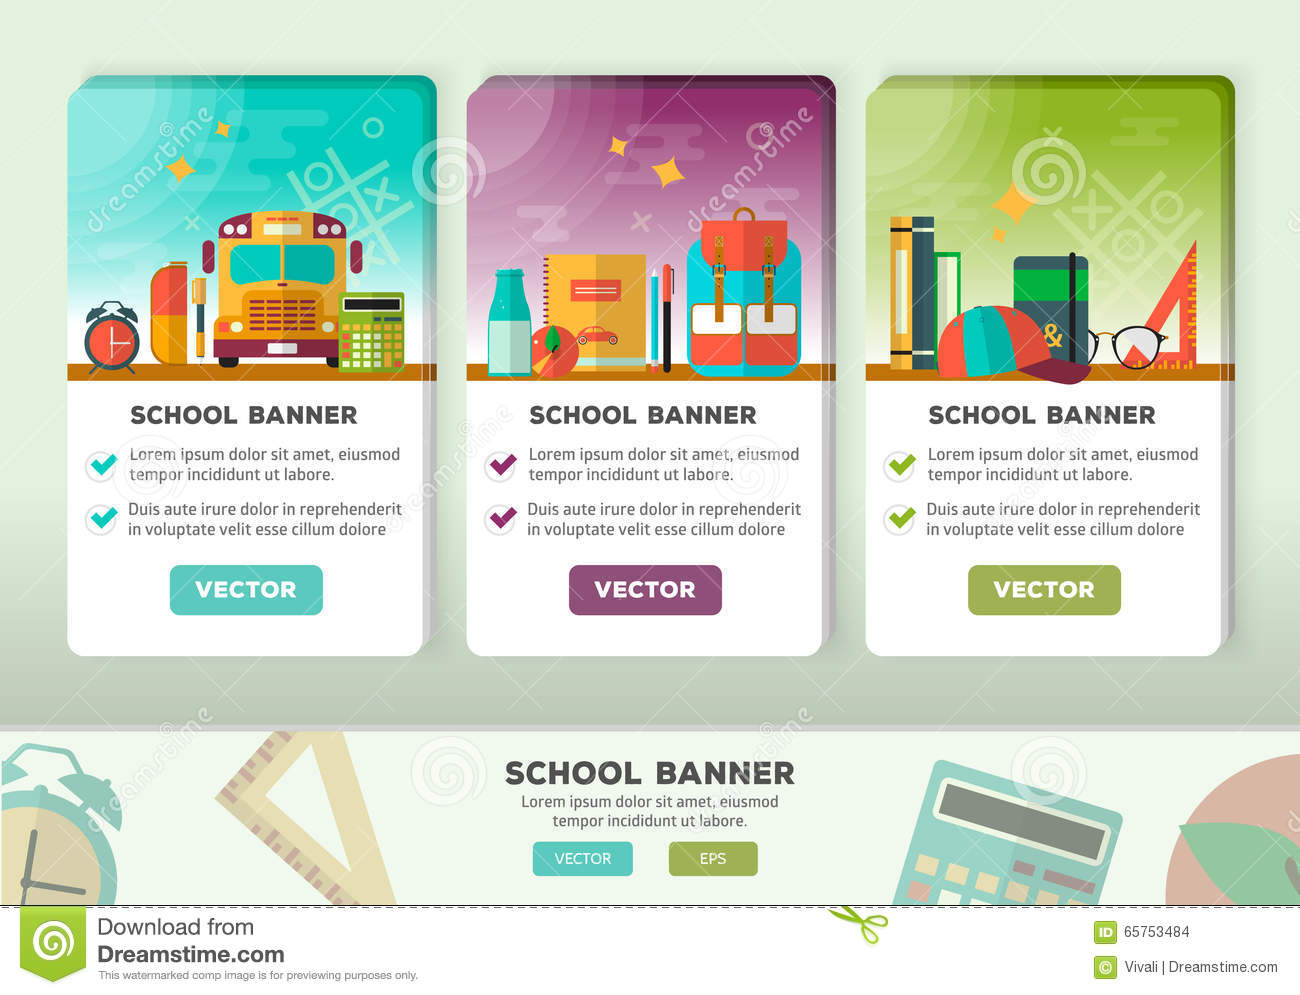 vector concepts design of education banner vertical flat banners